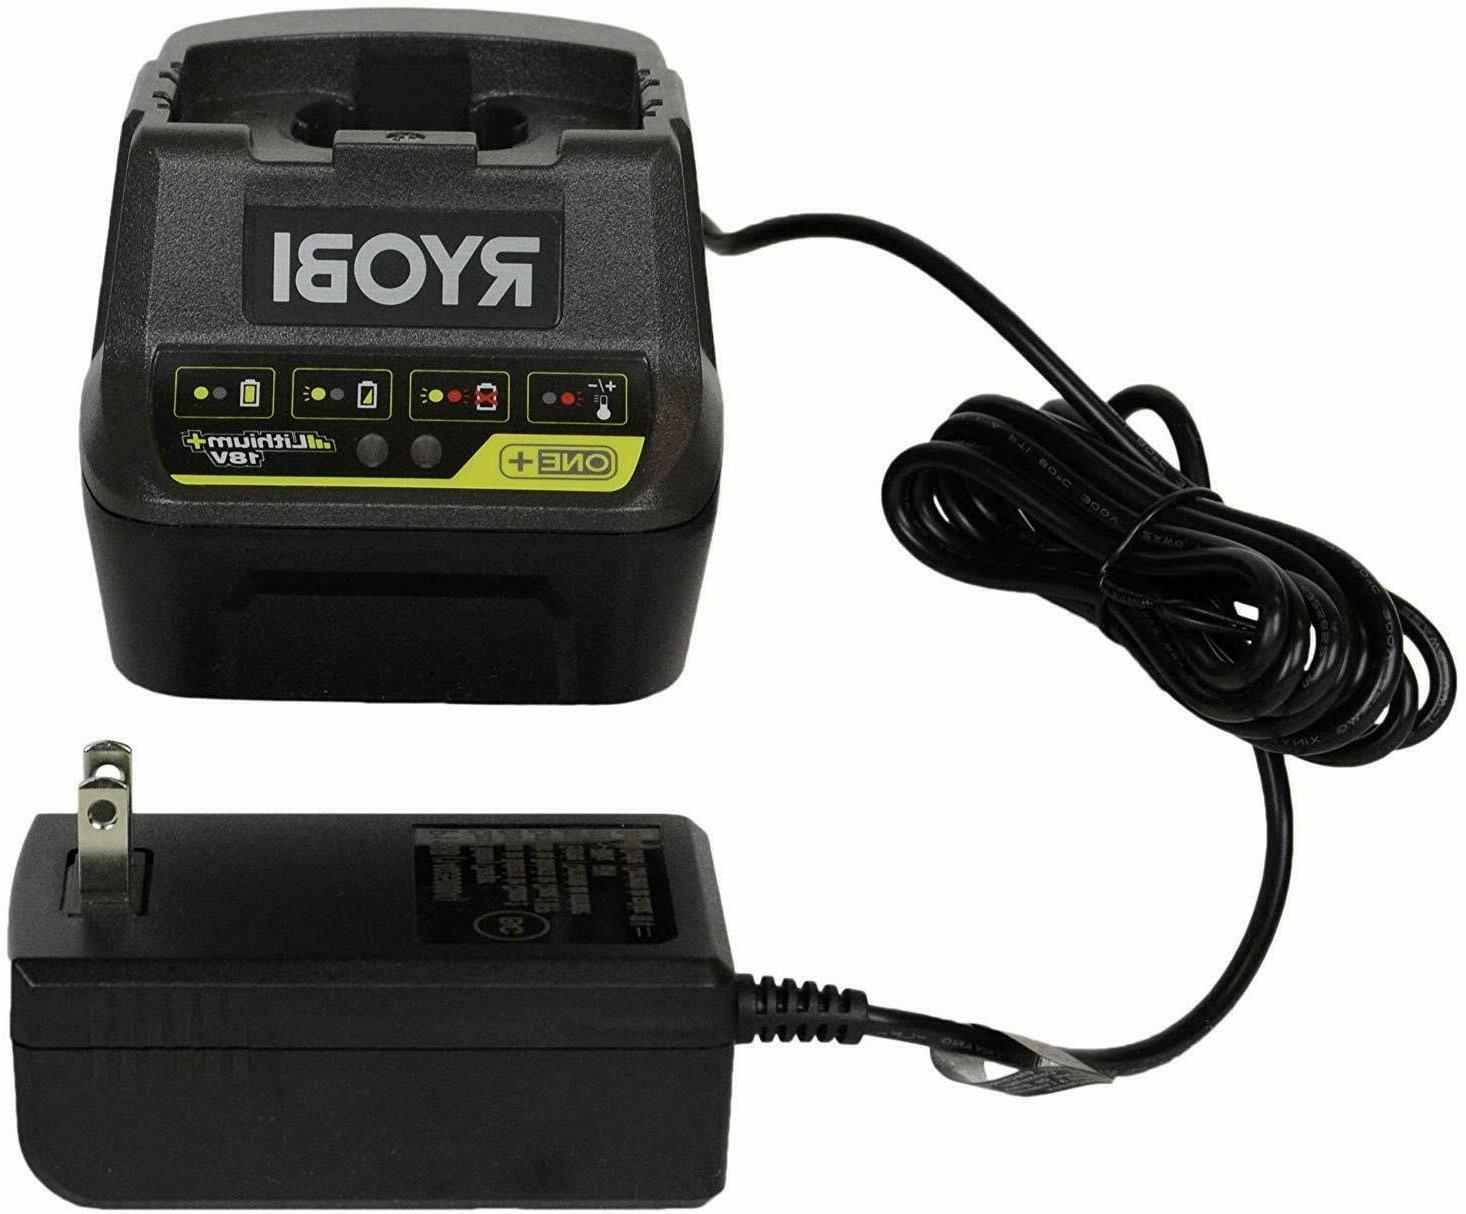 NEW 18V Weed Eater String Trimmer Edger Battery Charger Included